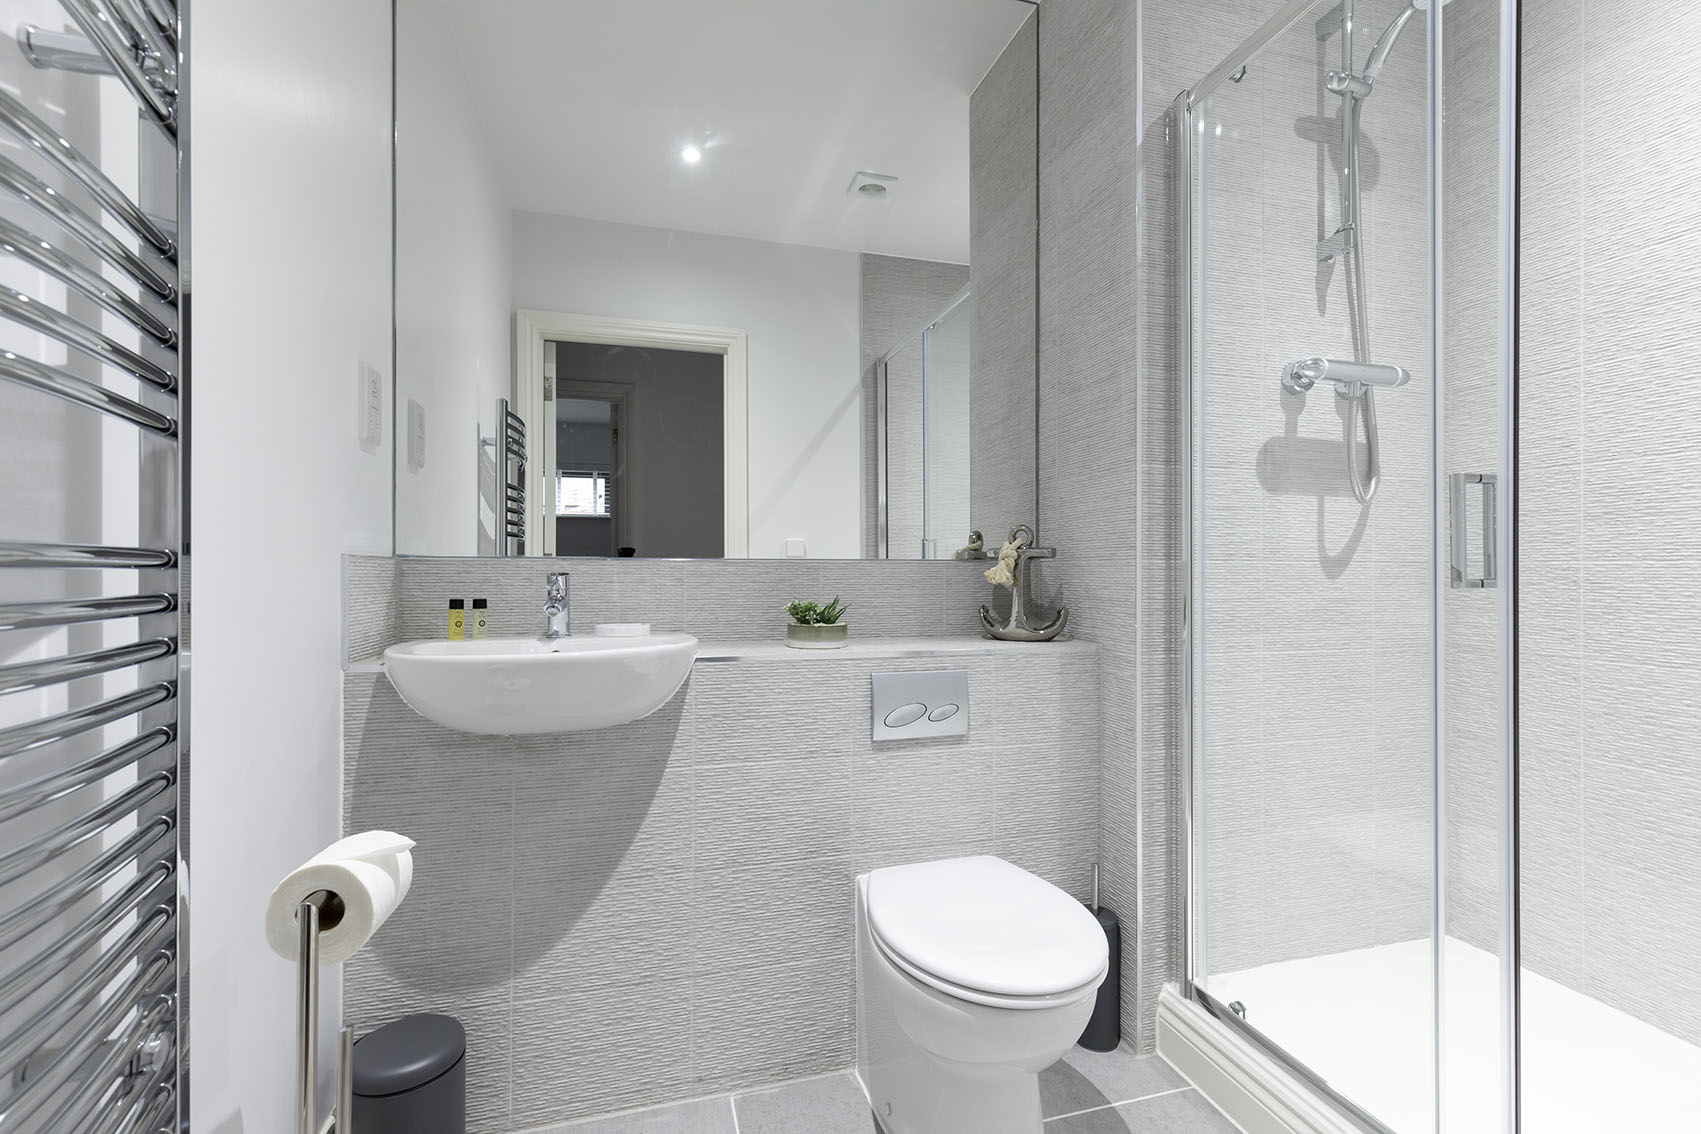 Bathroom at Mariners Court Apartment, The Docks, Gloucester - Citybase Apartments